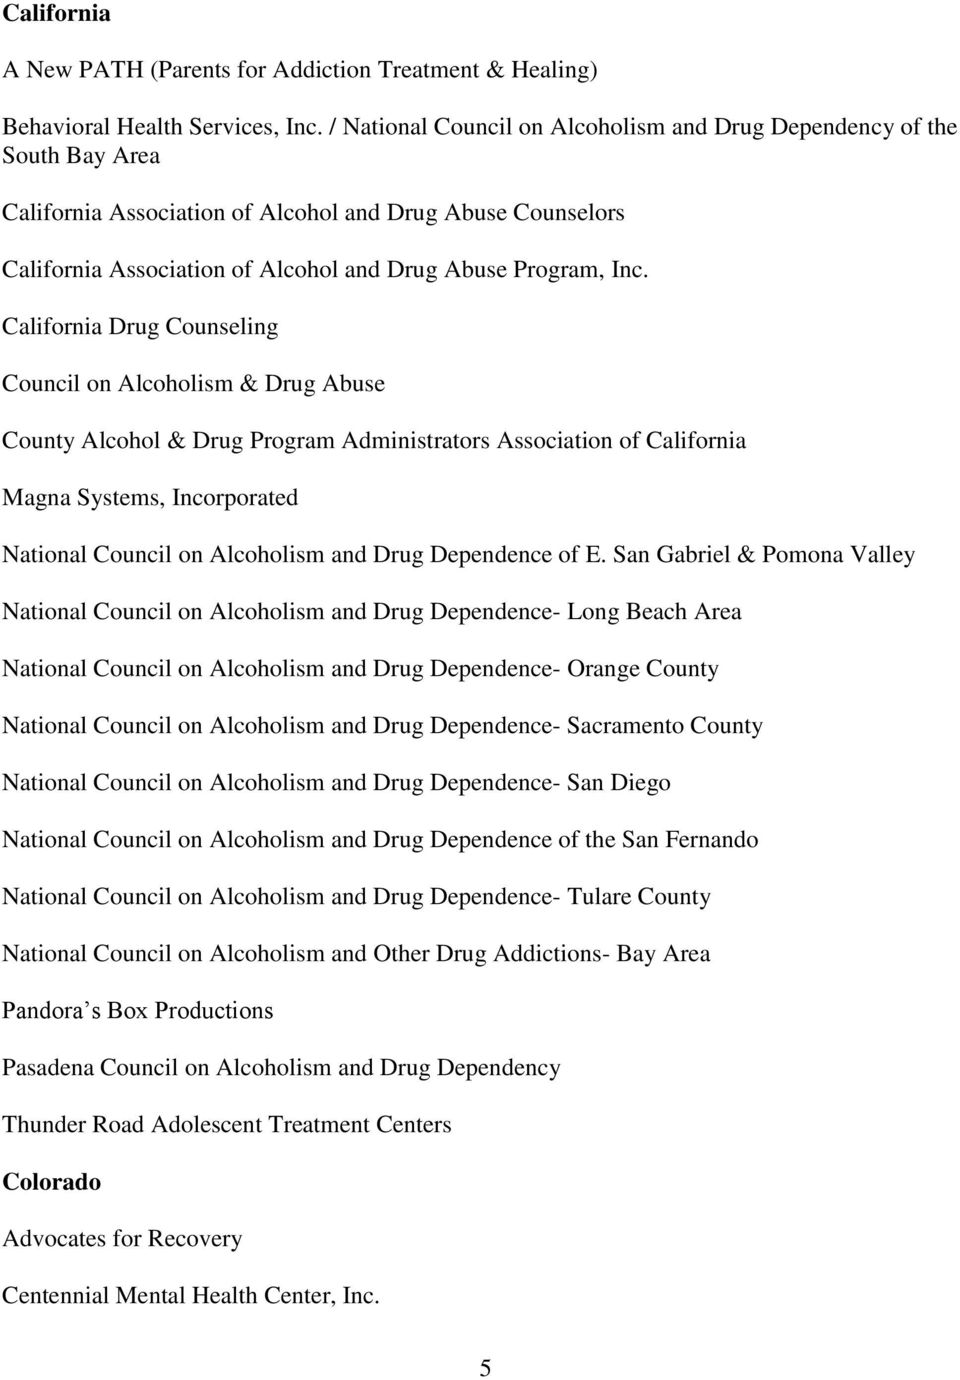 California Drug Counseling Council on Alcoholism & Drug Abuse County Alcohol & Drug Program Administrators Association of California Magna Systems, Incorporated National Council on Alcoholism and